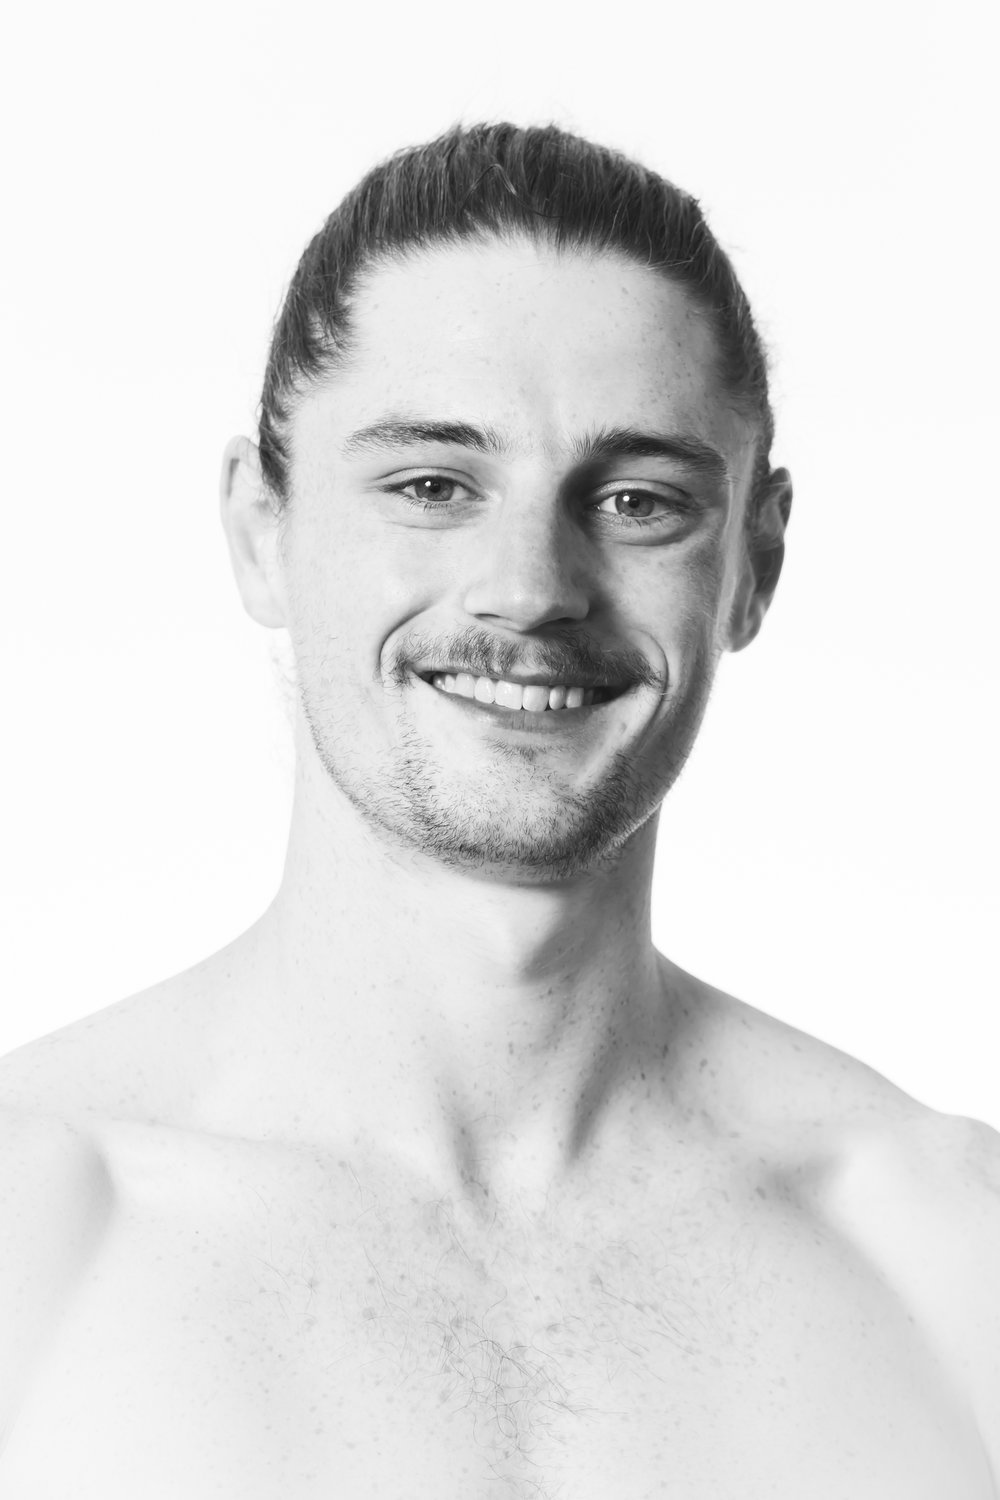 Tynan Wood   Solo Artist   Tynan was born in Newcastle and trained with the New Zealand School of Dance until his graduation in December 2014.In 2013, Tynan represented NZSD at the Assemble'e Internationale hosted by Canada National Ballet School, taking top honours at the Alana Haines Australasian Ballet Awards and appeared as a guest artist at Auckland's Tempo Dance Festival.   Subsequently in 2014, Tynan was invited to join Sydney Dance Company for the Sydney season of Interplay. Following his graduation from NZSOD, Tynan joined Royal New Zealand Ballet for the seasons of Don Quixote and Salute in 2015. He was further invited to perform with RNZB on their international tour of the United Kingdom and Italy.  Tynan joined Melbourne City Ballet in 2016 in the role of Company Artist and was promoted to Solo Artist at the commencement of 2017.